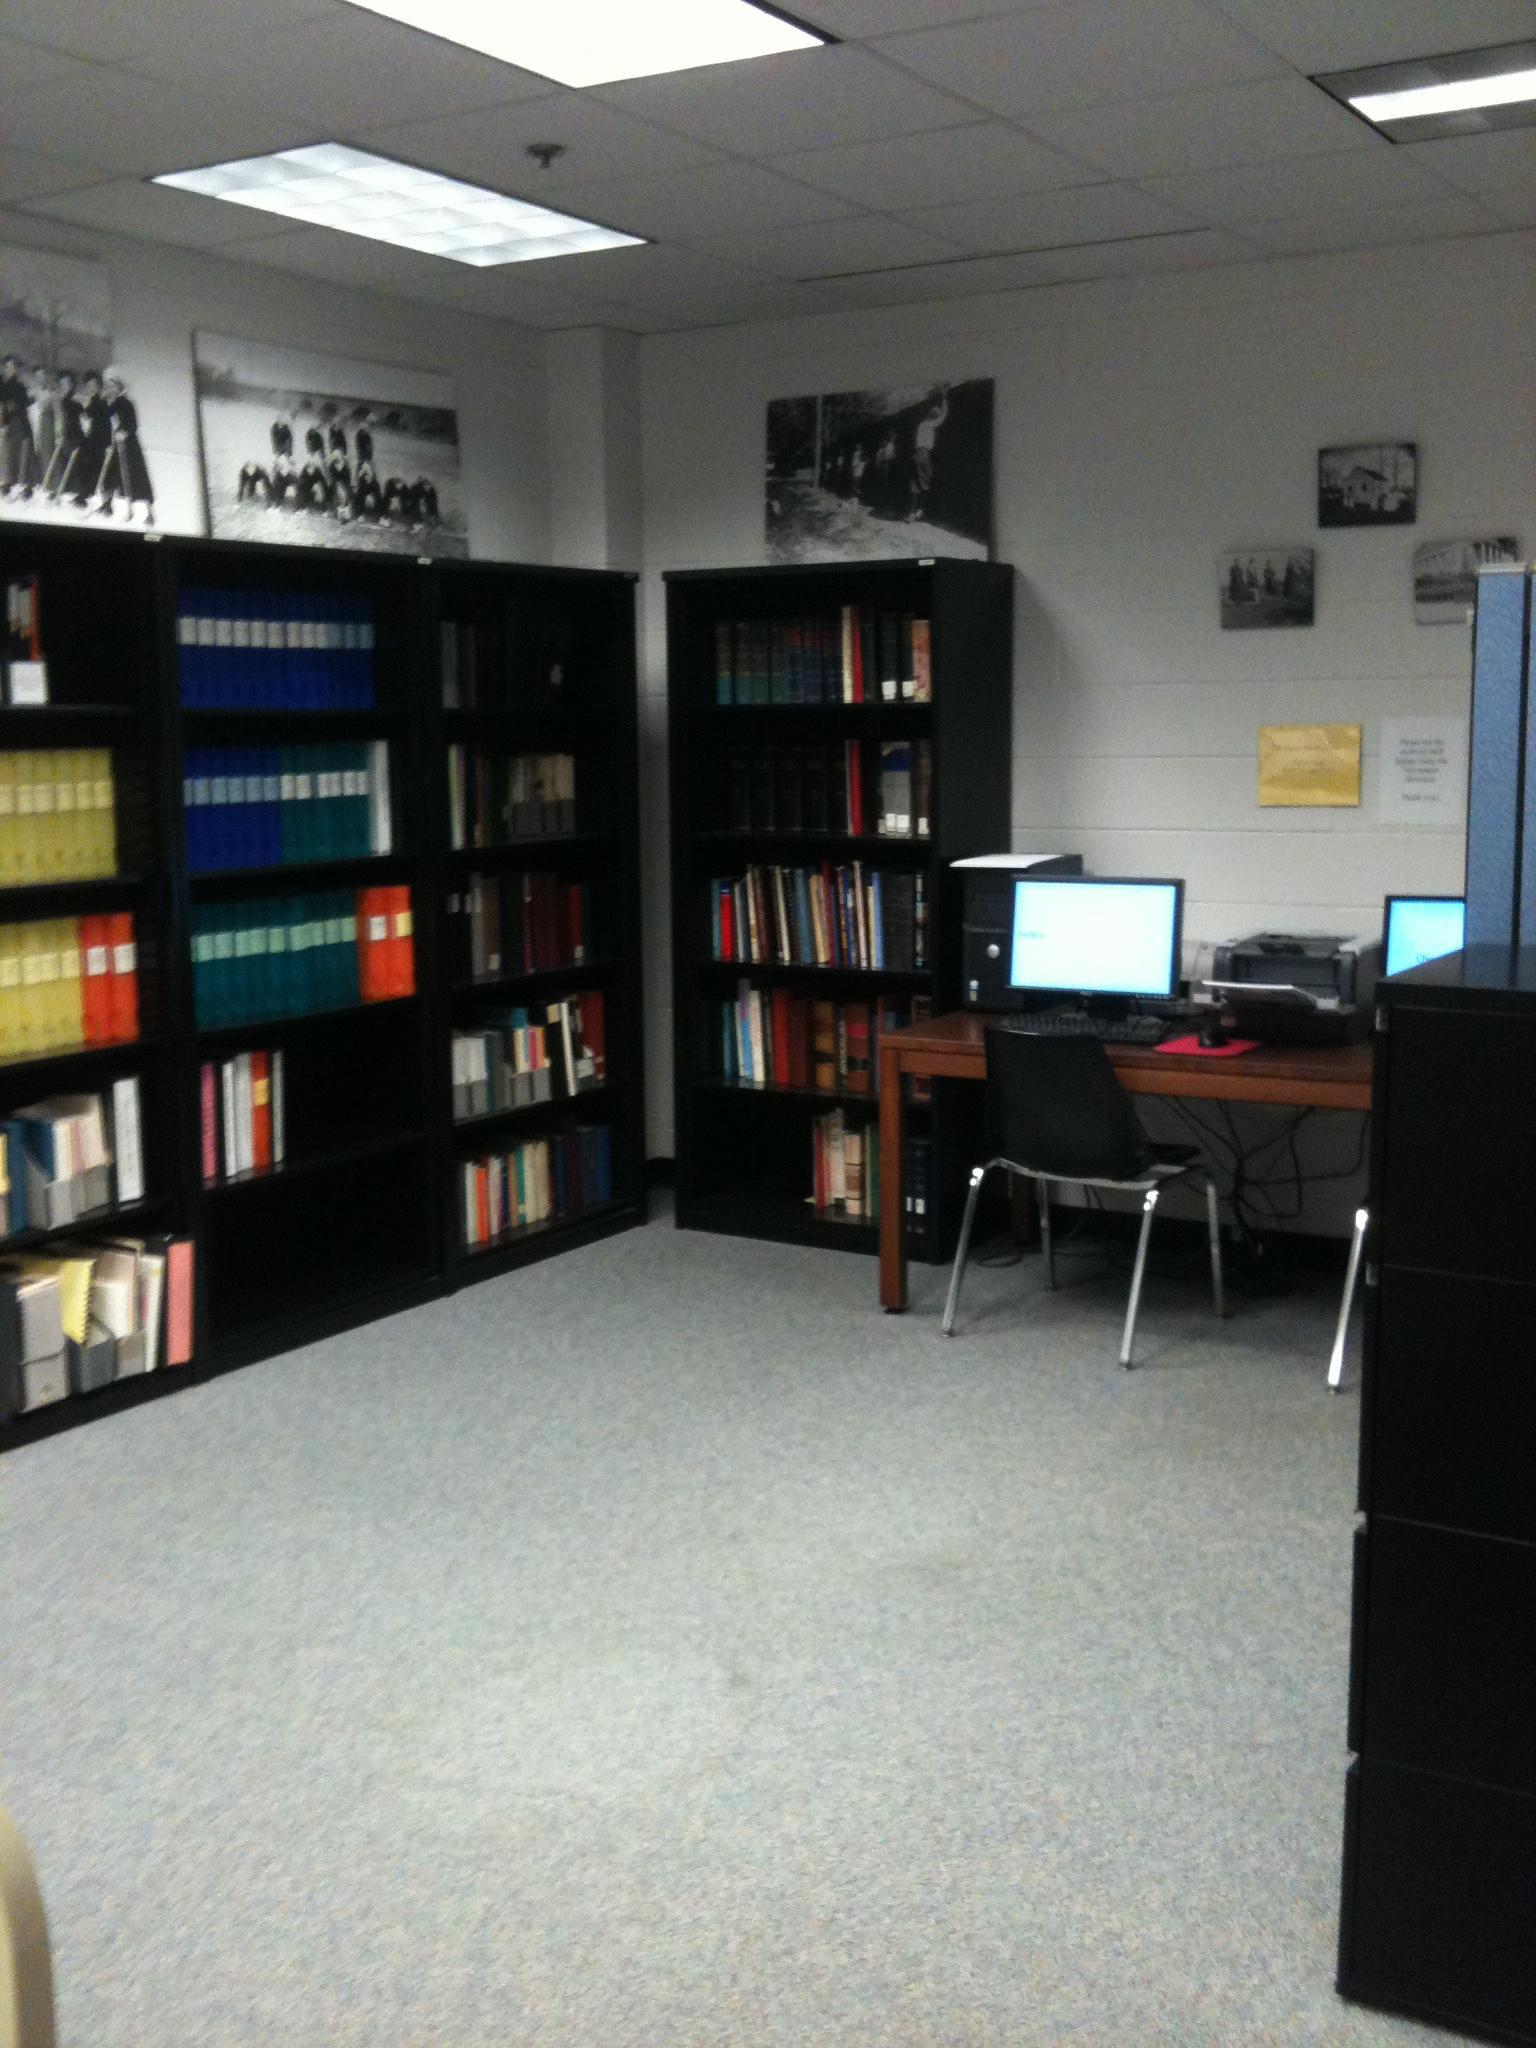 The research room in the Government Services Center